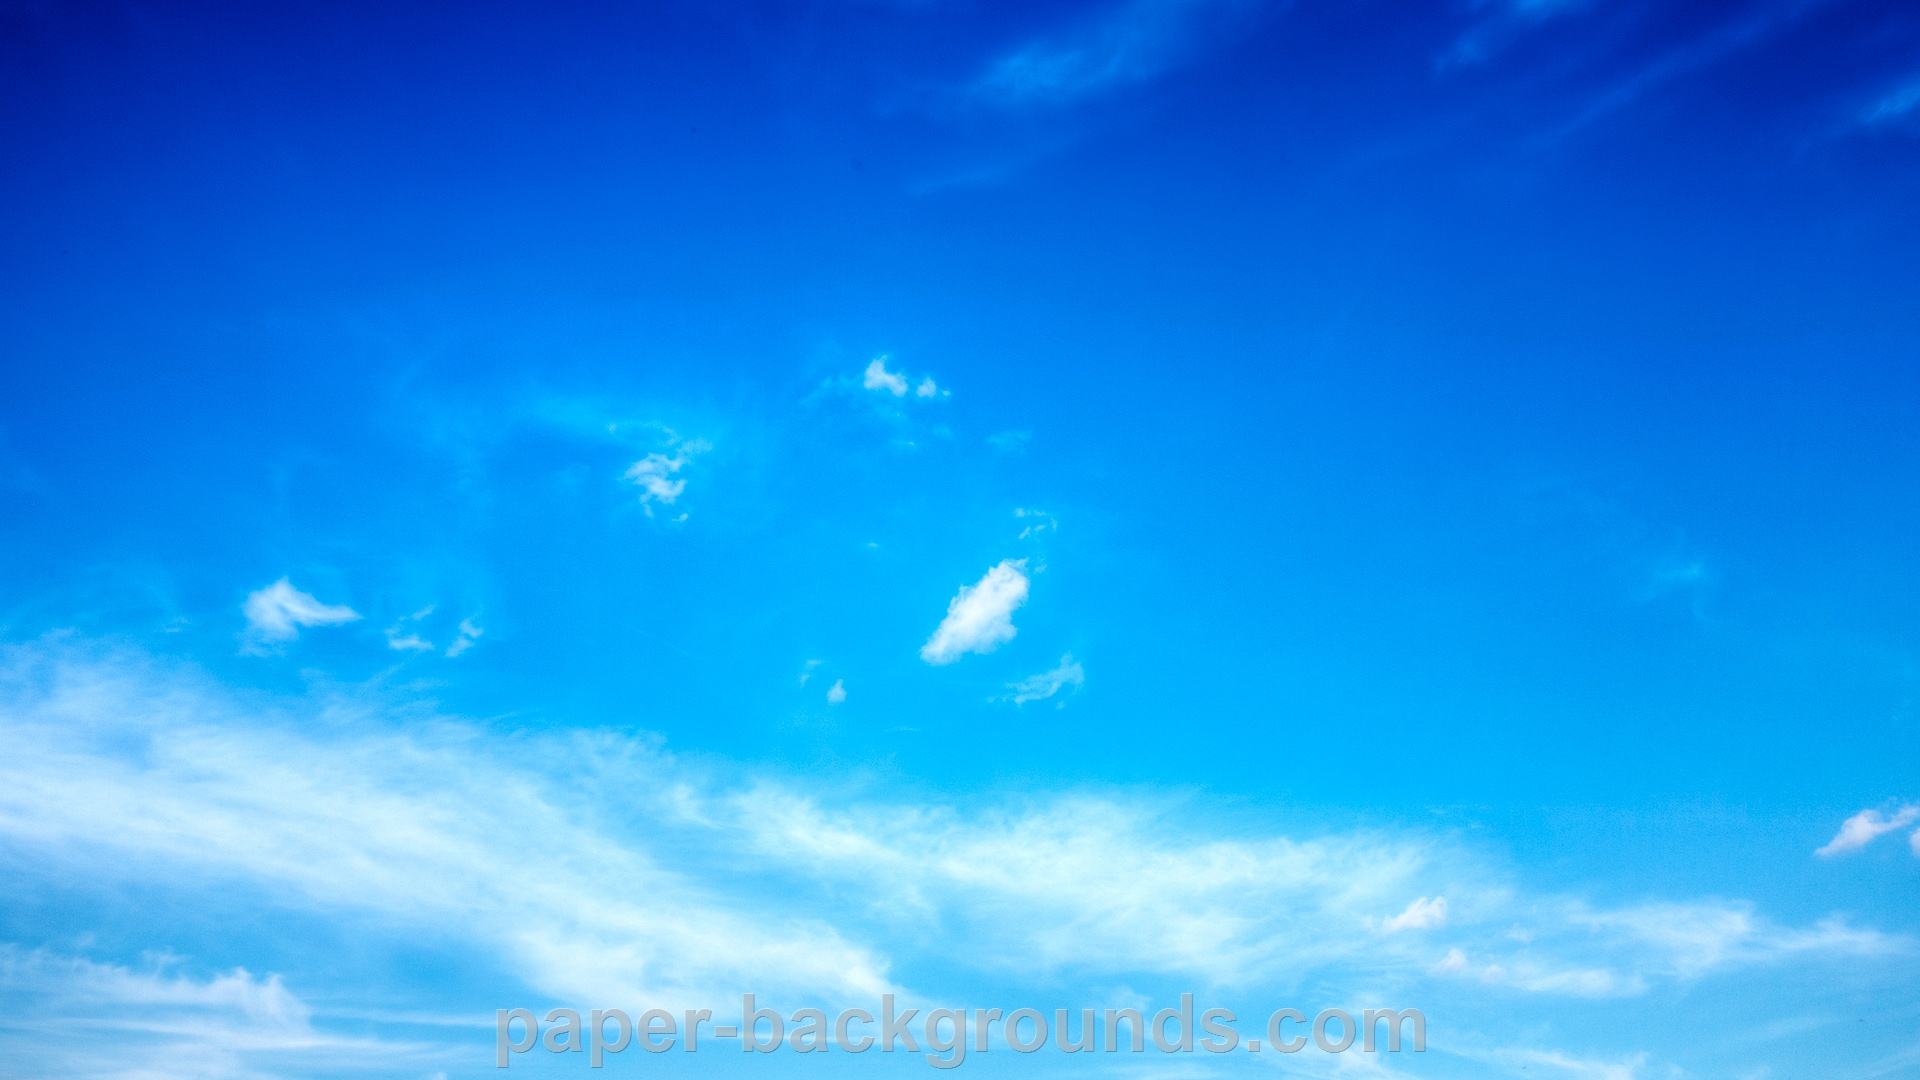 tags blue background sky blue background blue sky date 13 03 12 1920x1080